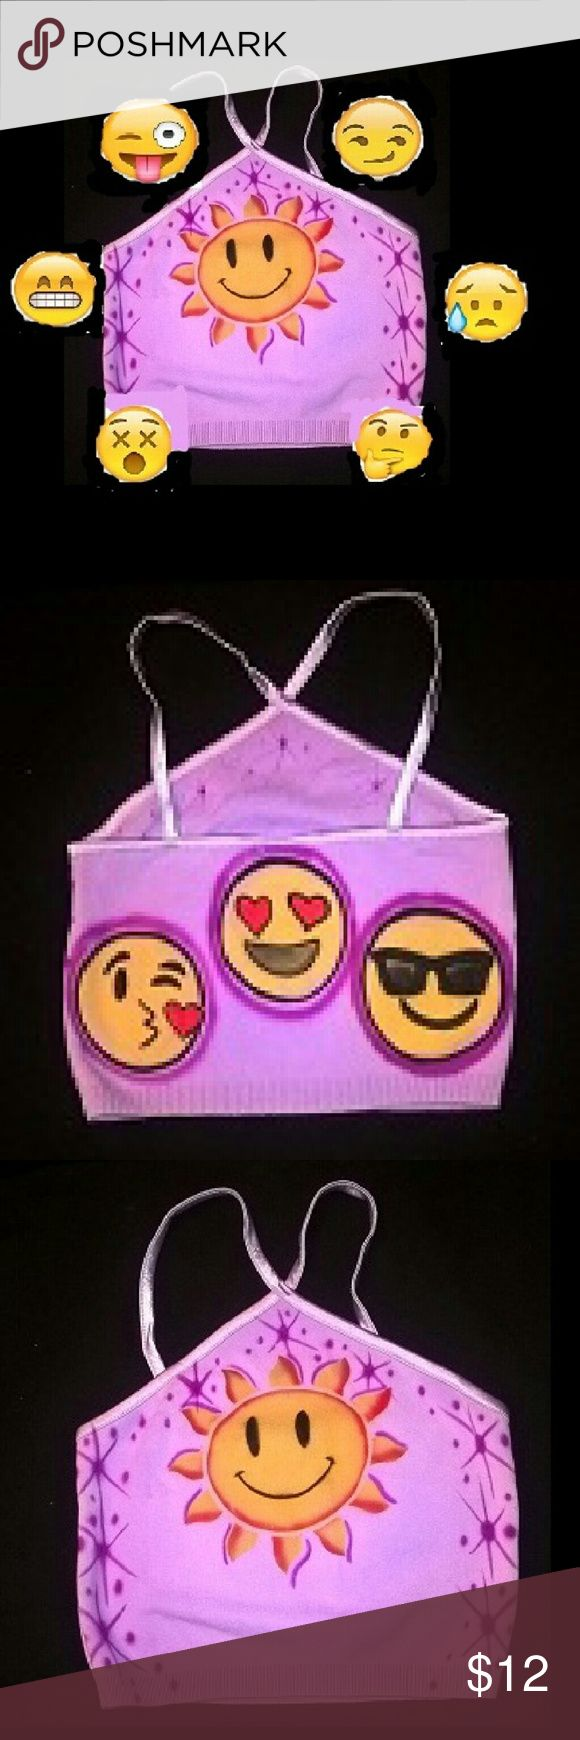 Airbrushed emoji spaghetti strap top This is a lavender spaghetti strap juniors top size small.  This has never been worn,  it was a sample I made to show off some emojis. This tool has been sitting on a box for a couple years The front of the top shows off  a sun emoji with purple star burst.  The back of the top has 3 emoji , sunglass,  happy and Blowing a kiss Emoji Tops Crop Tops